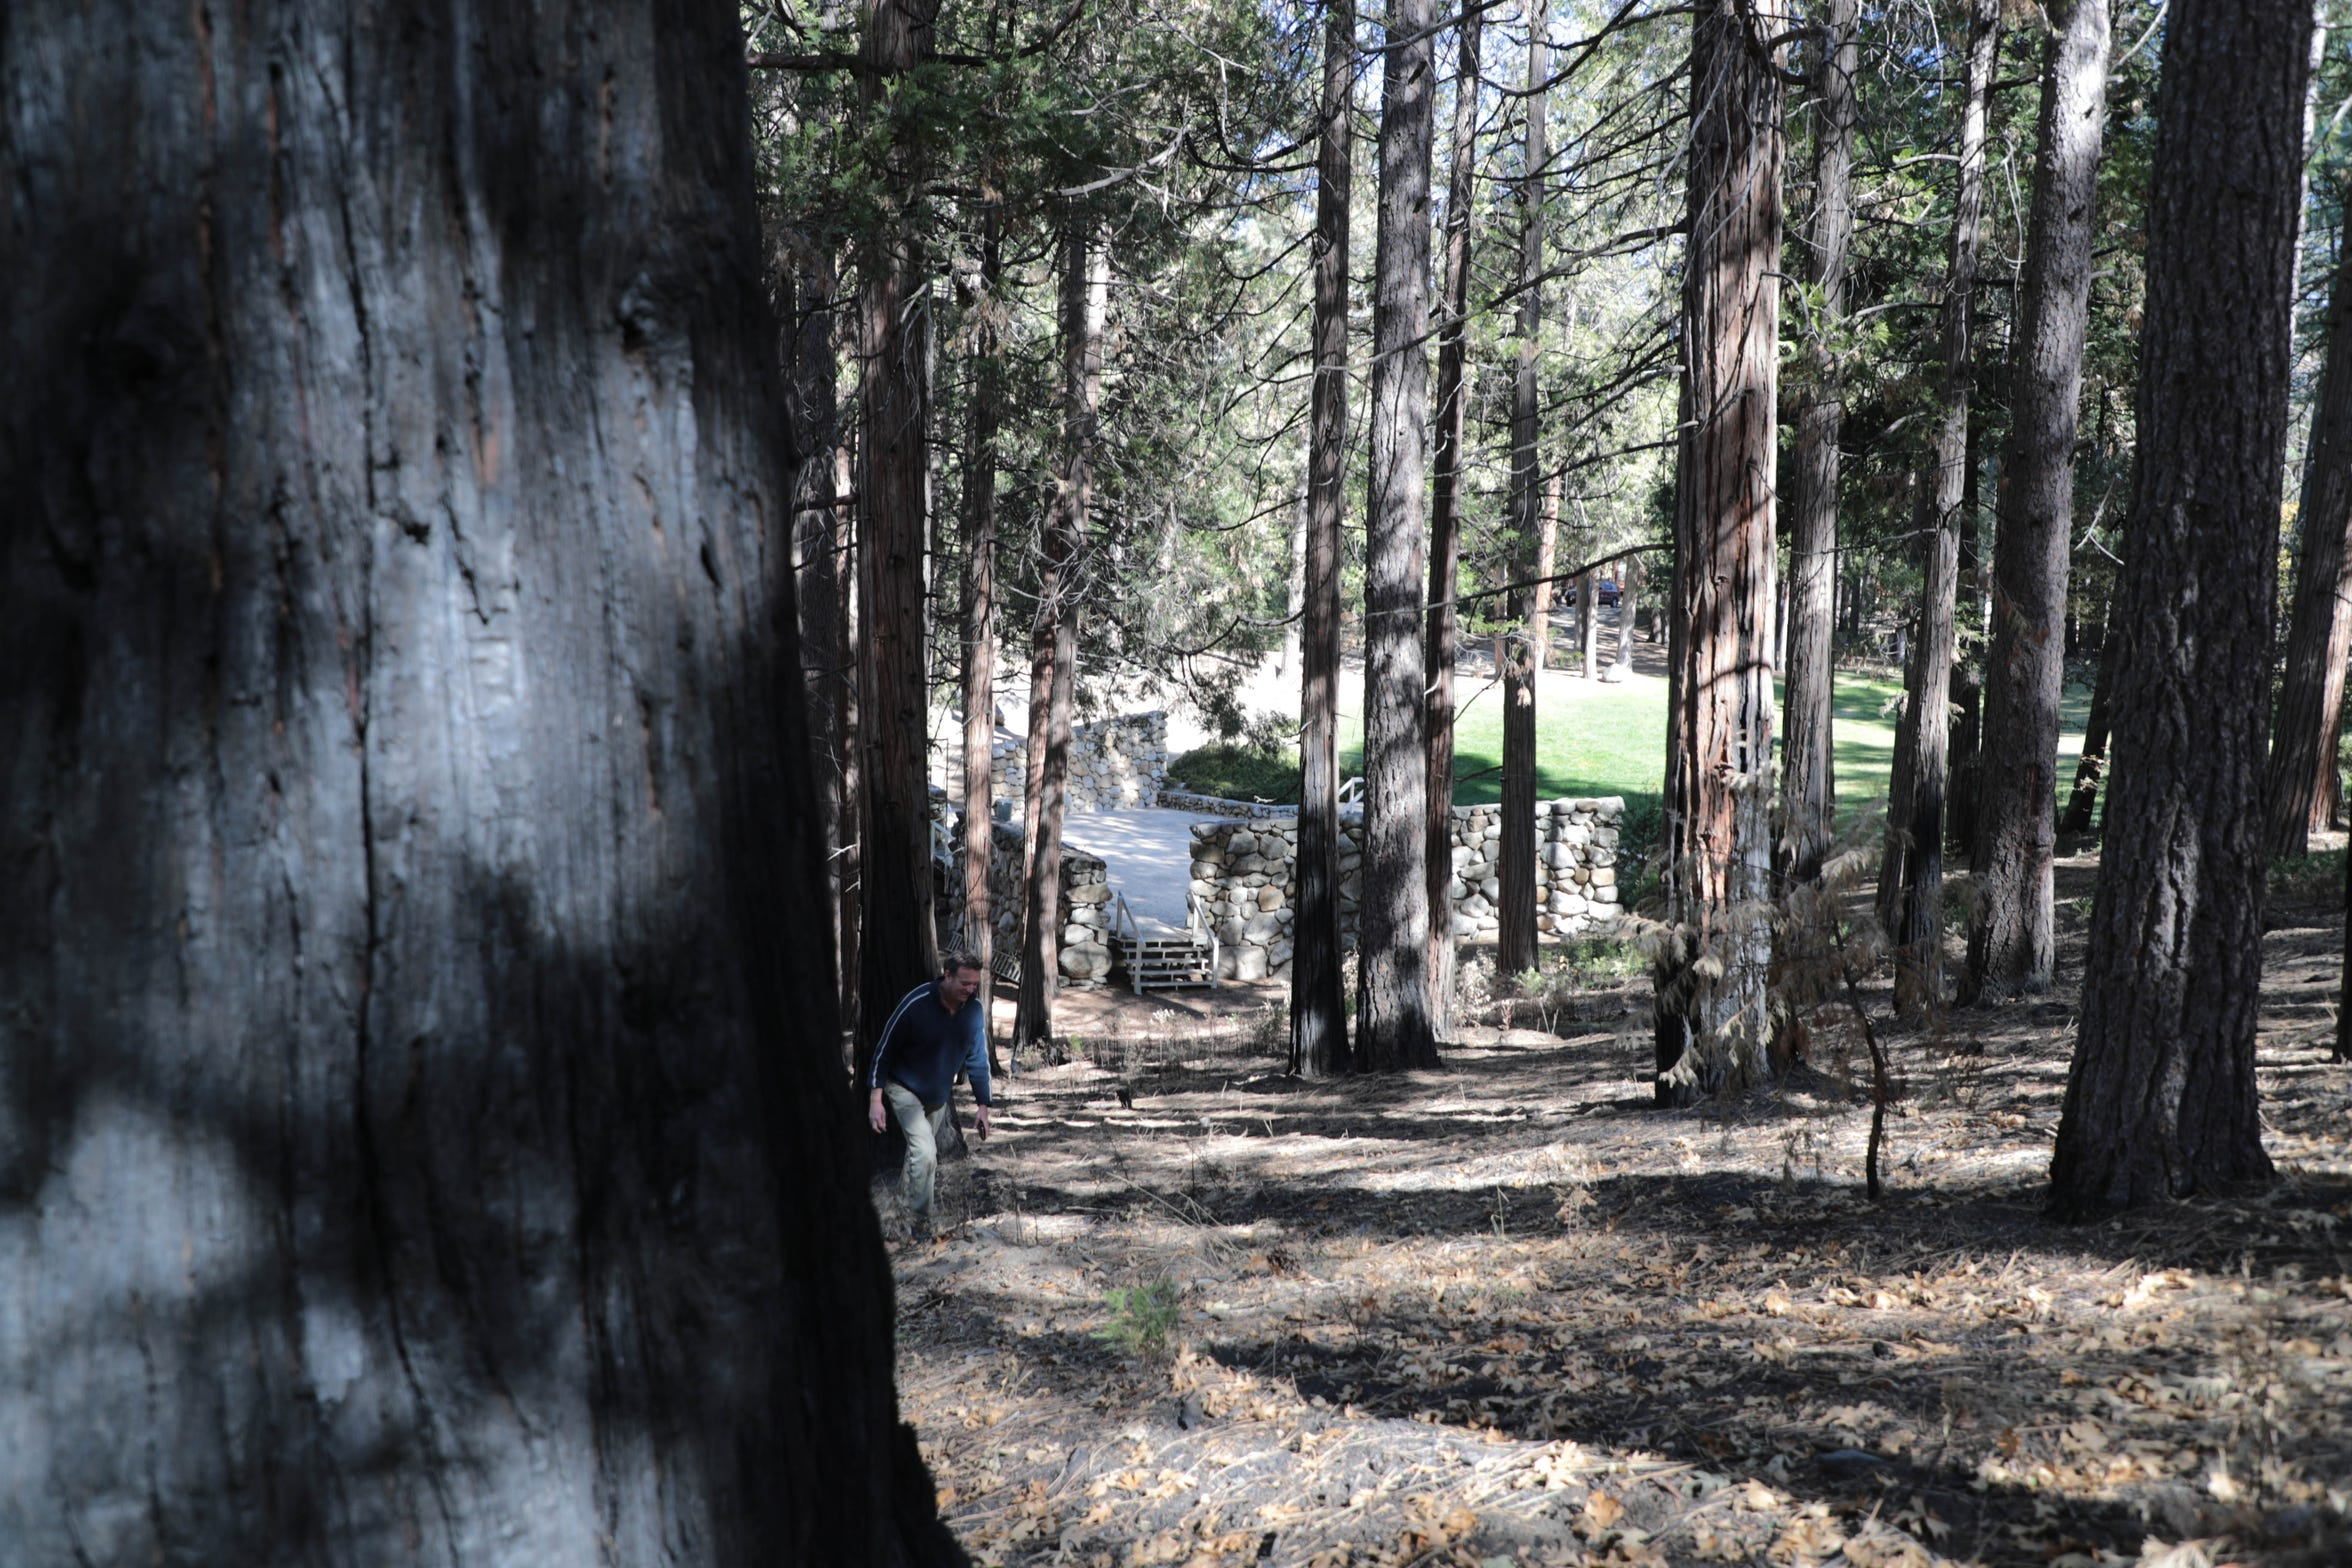 Two years before the Cranston Fire, Idyllwild Arts Foundation received grant funding to create a fuel break around the school's perimeter, including this area behind the on-campus amphitheater.